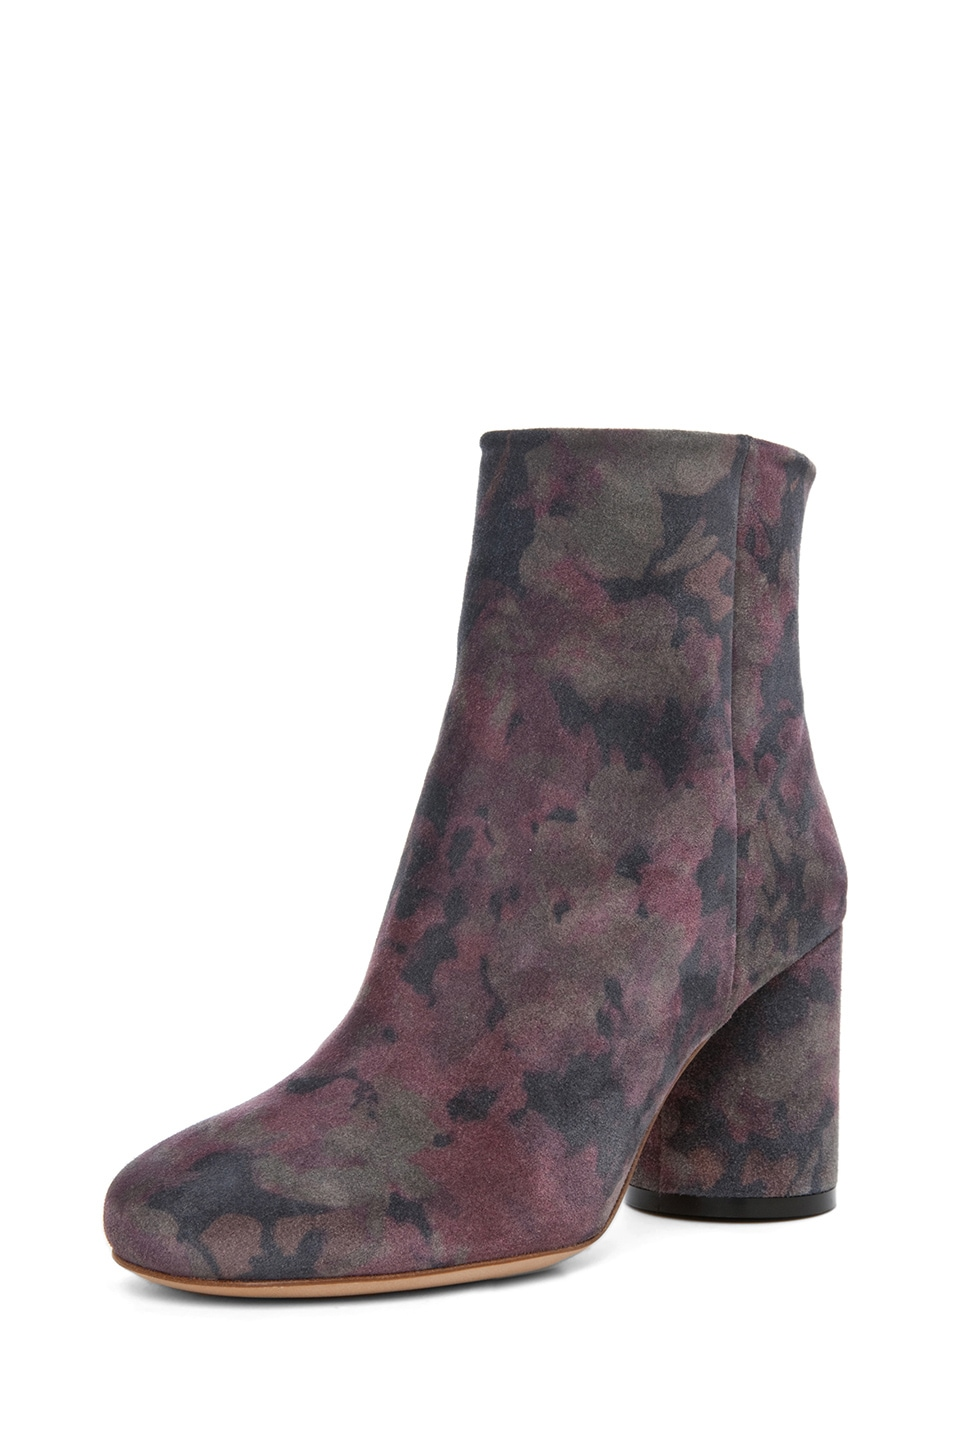 Image 2 of Maison Margiela Suede Printed Bootie in Dark Flowers